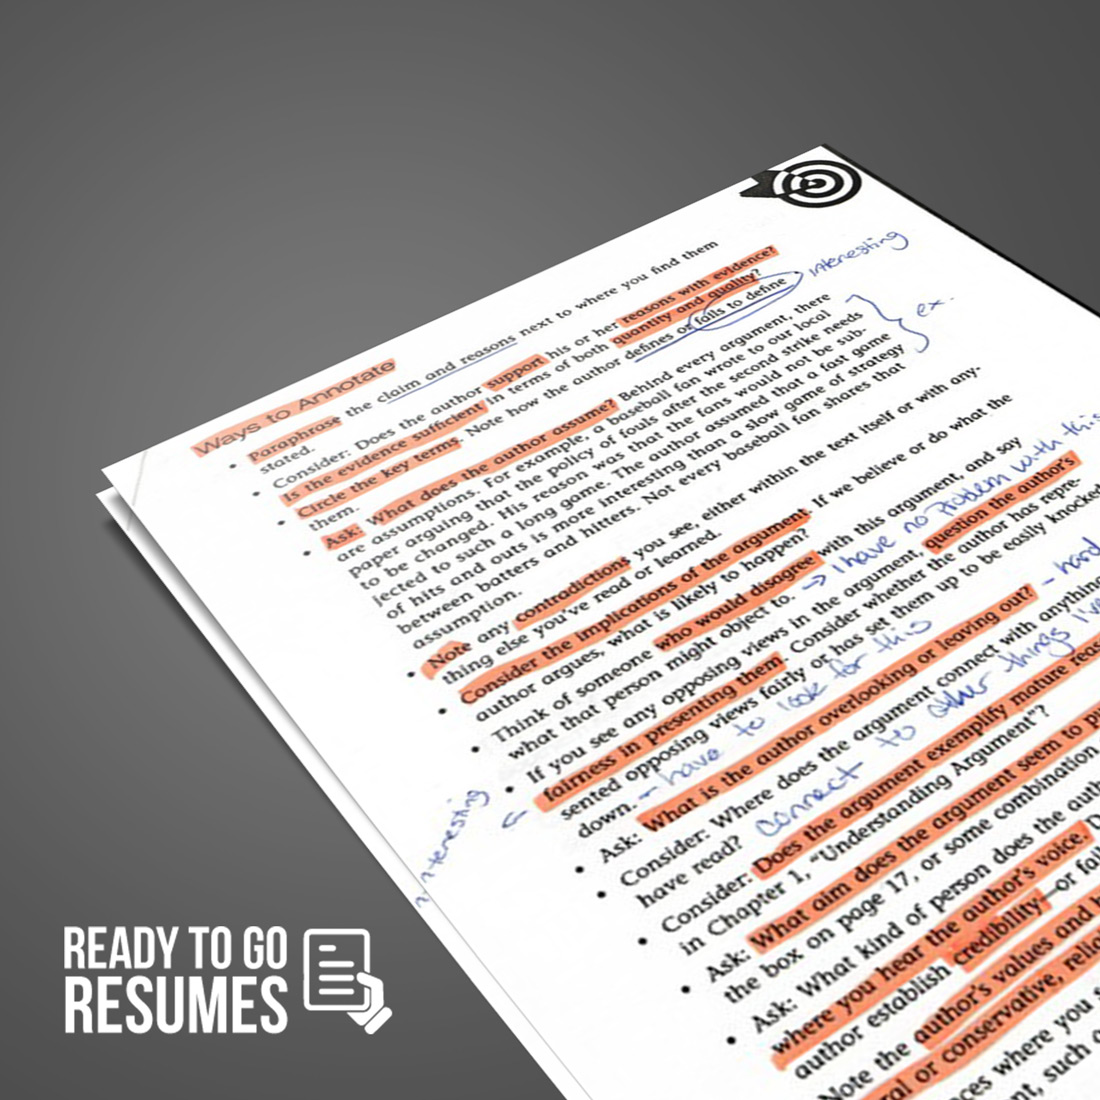 Resume Critique Resume Critique Ready To Go Resumes